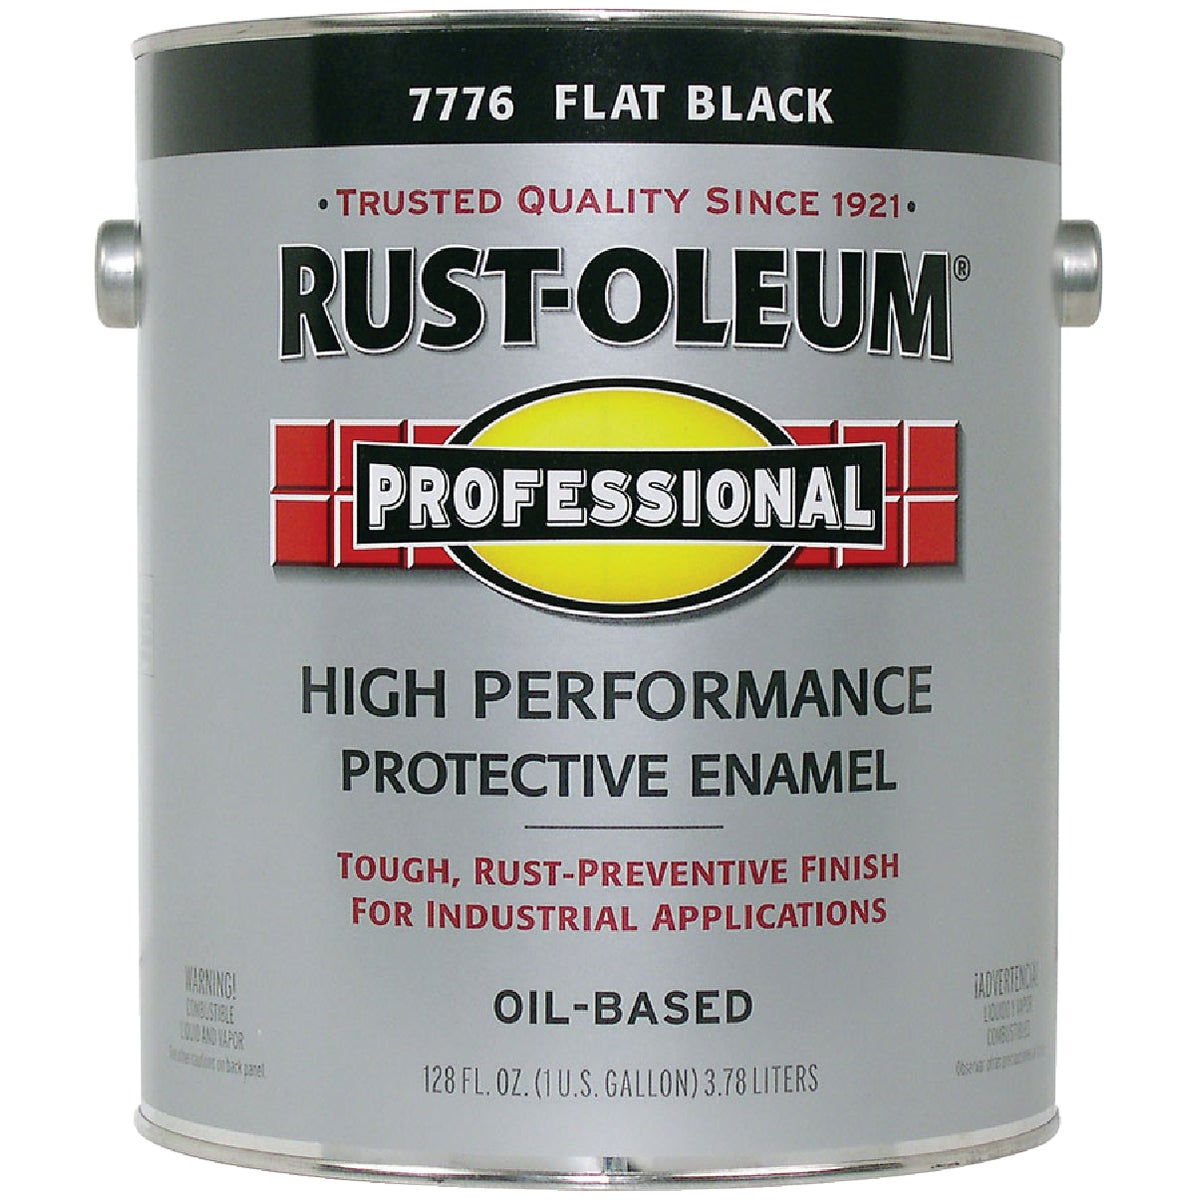 FLAT BLACK ENAMEL - 7776-402 by Rustoleum